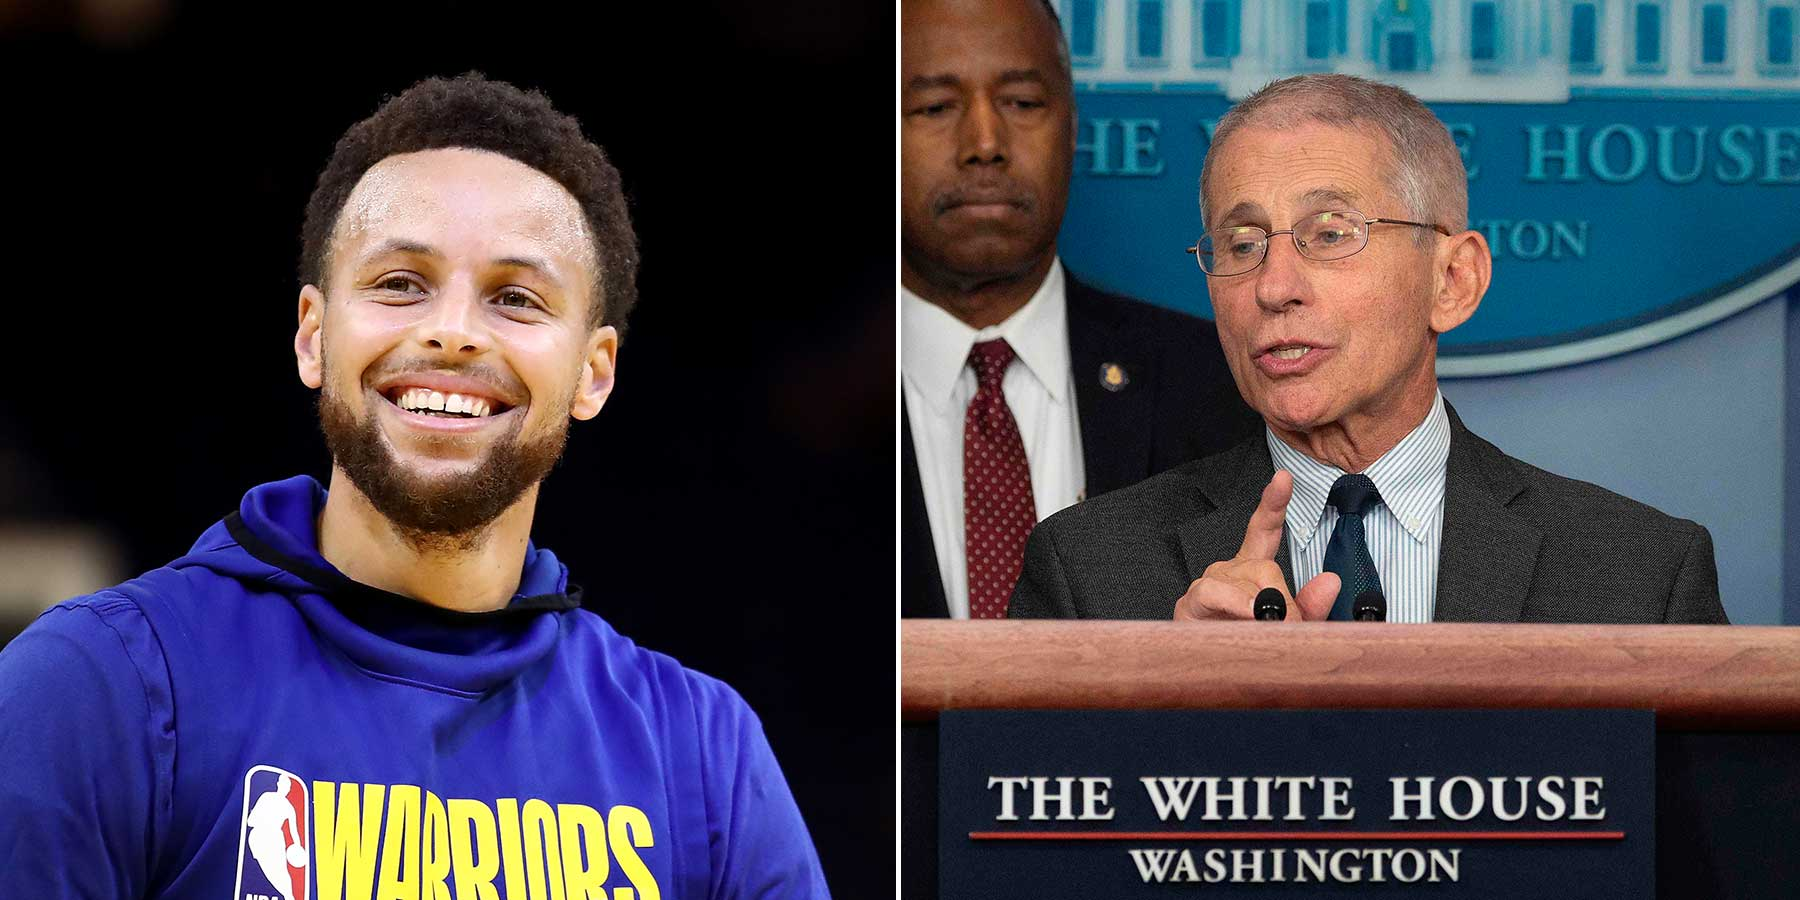 'This is serious business': Dr. Anthony Fauci answered questions from Steph Curry on Instagram